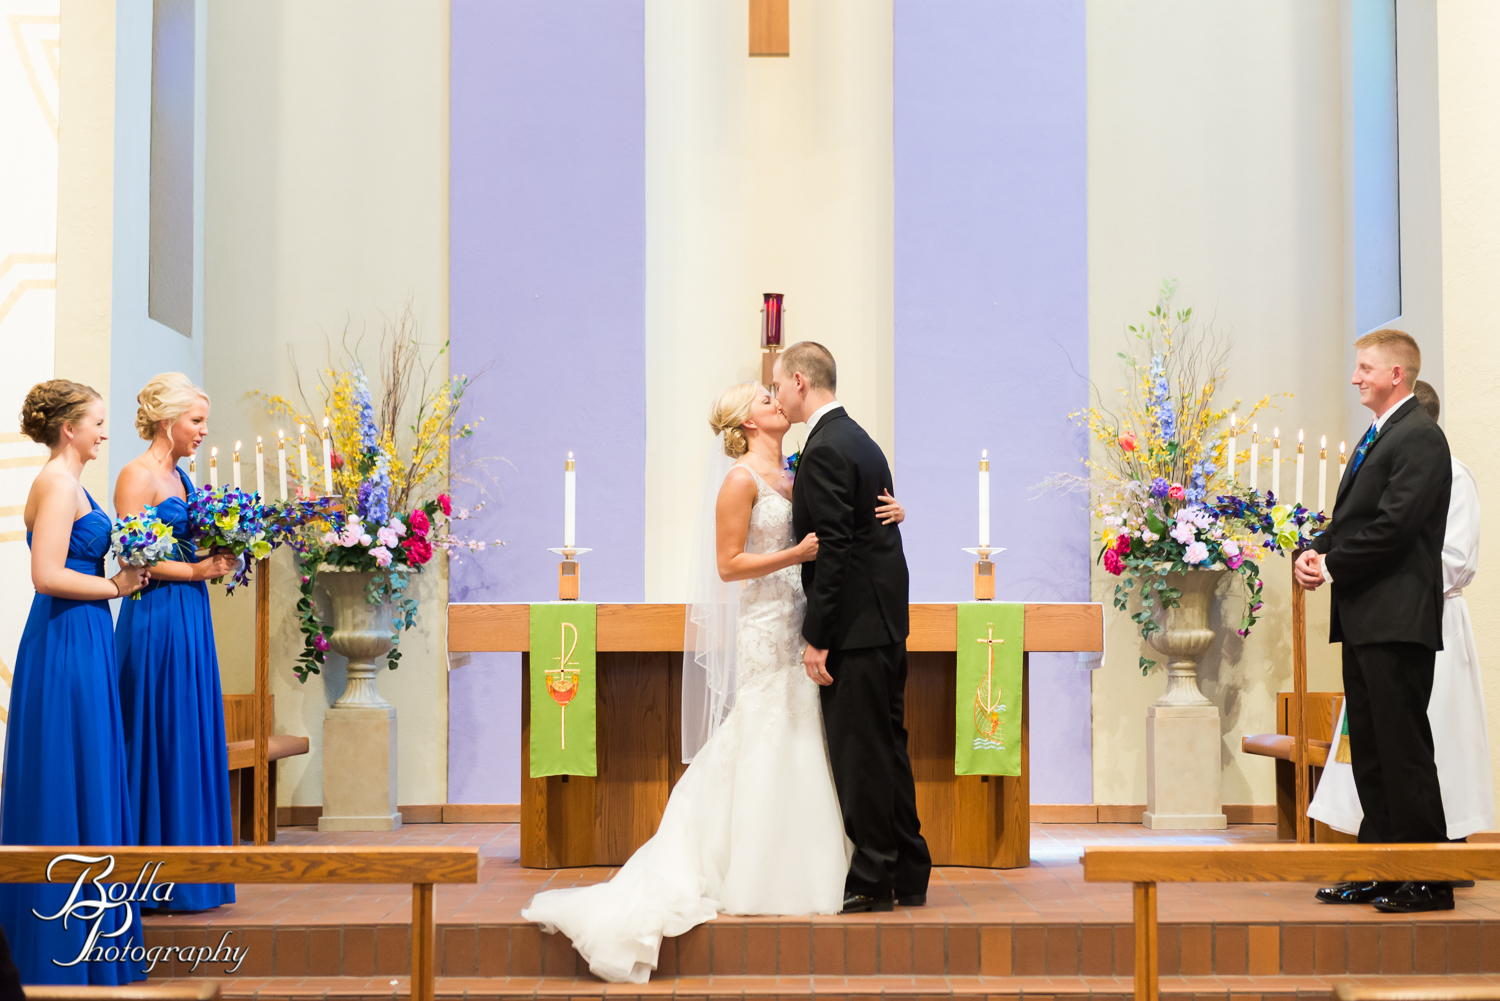 Bolla_Photography_St_Louis_wedding_photographer_Edwardsville_Highland-0188.jpg